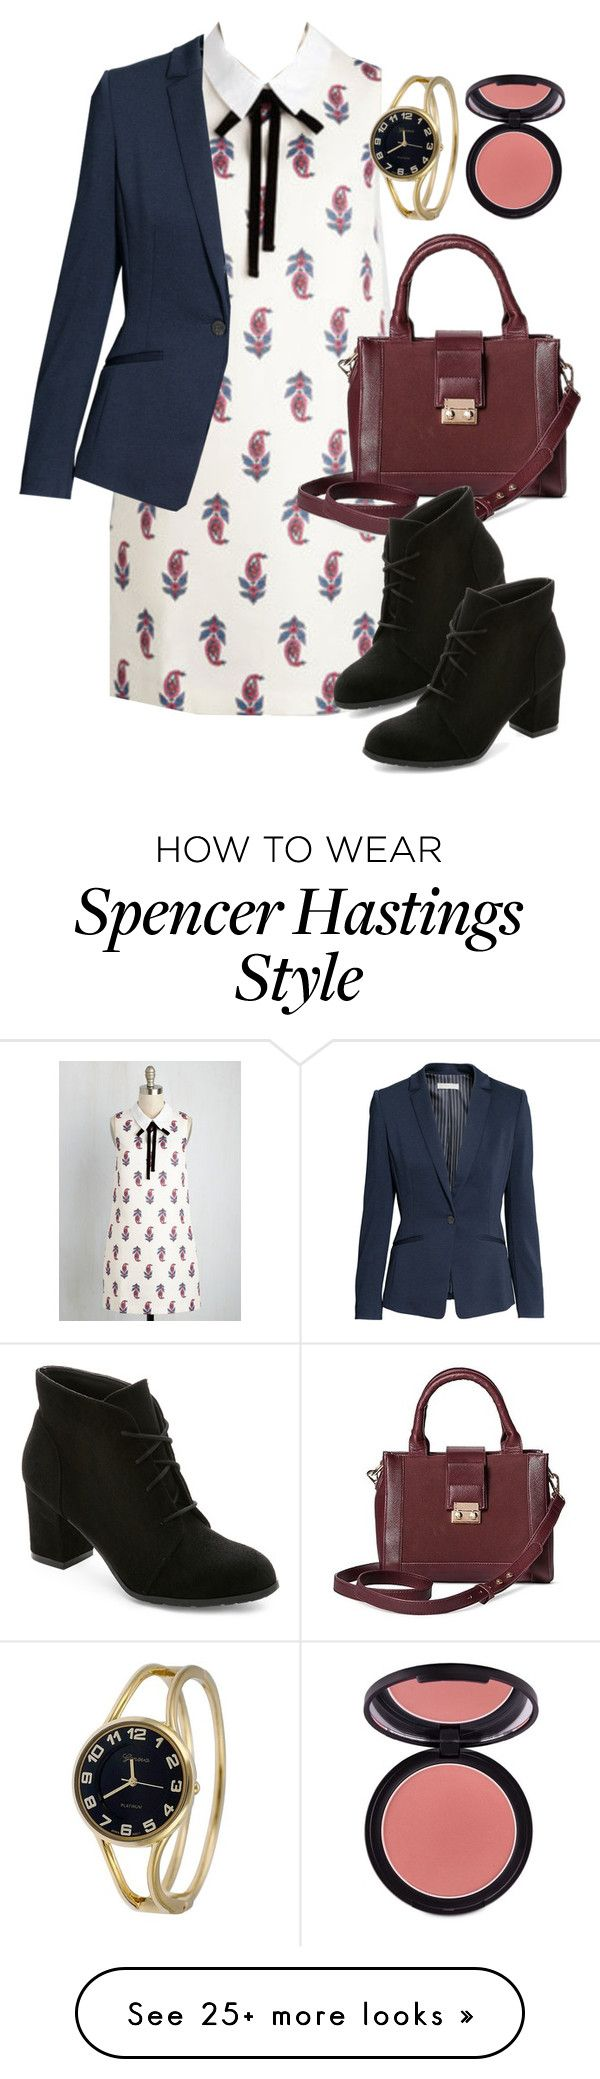 """""""Spencer Hastings inspired outfit with requested dress"""" by liarsstyle on Polyvore featuring Who What Wear, Madden Girl, Geneva, Sigma, date, Work, Semi and mid"""